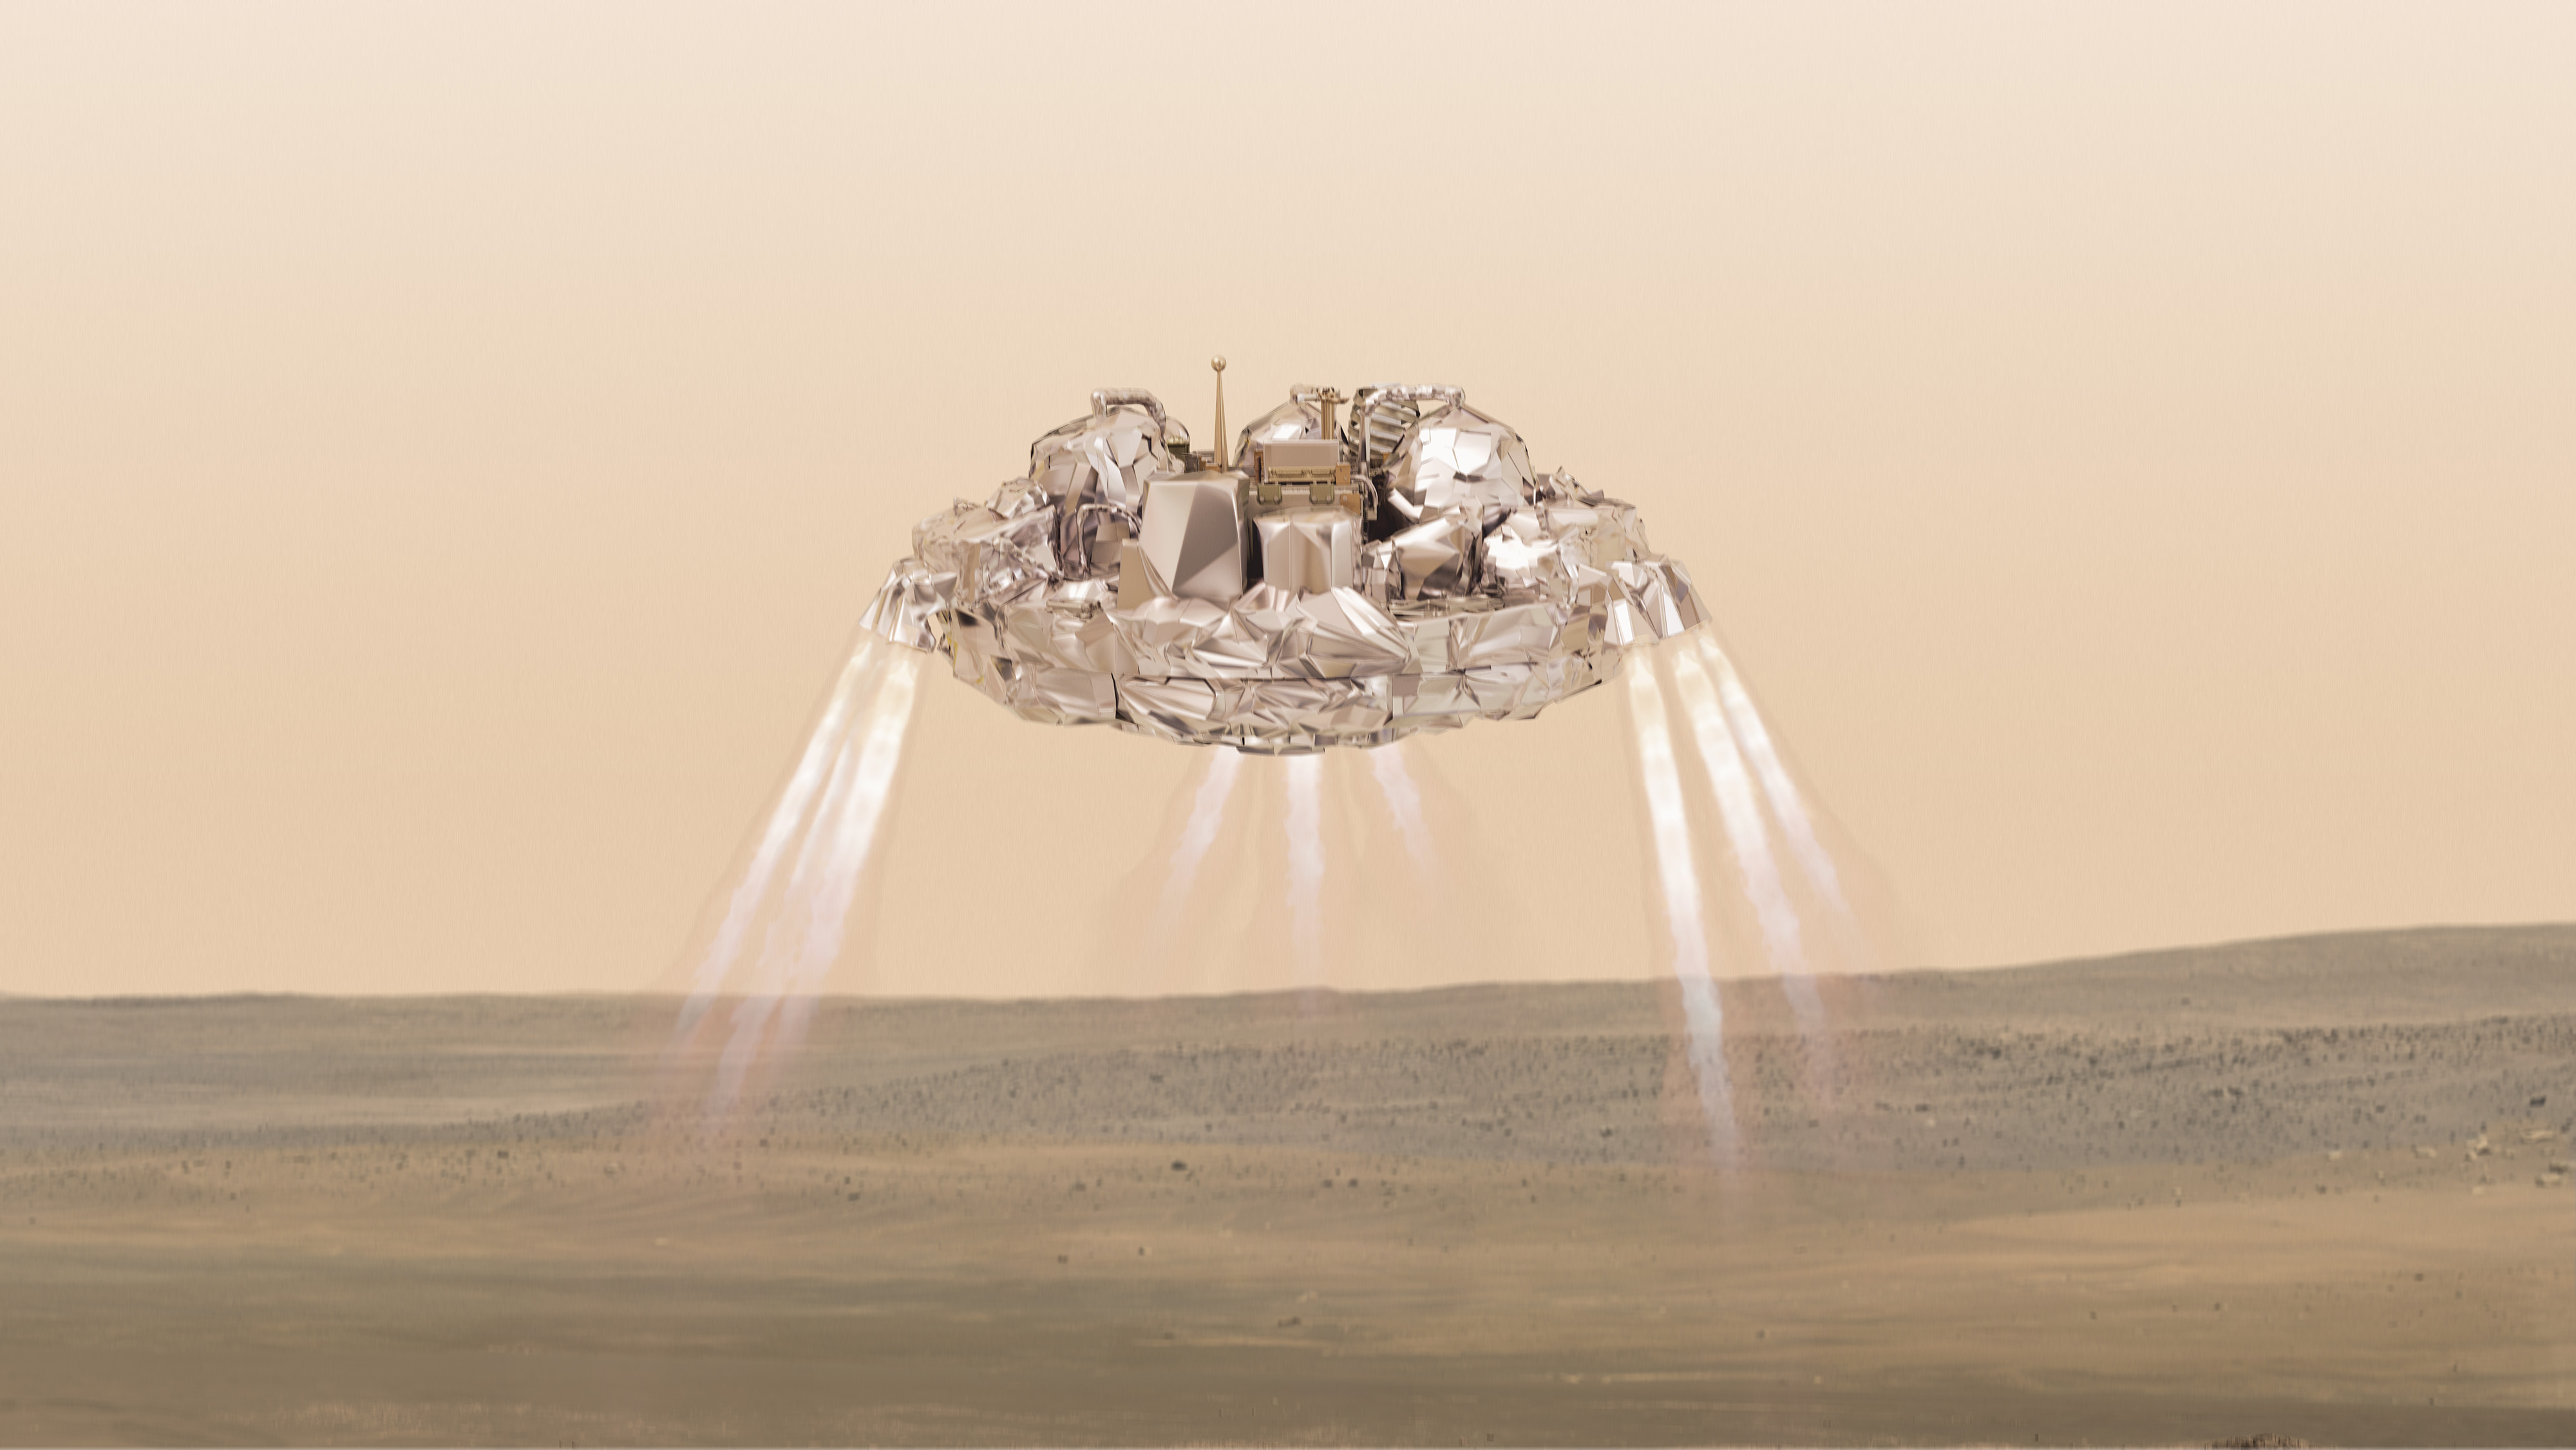 Schiaparelli lander above the surface of Mars